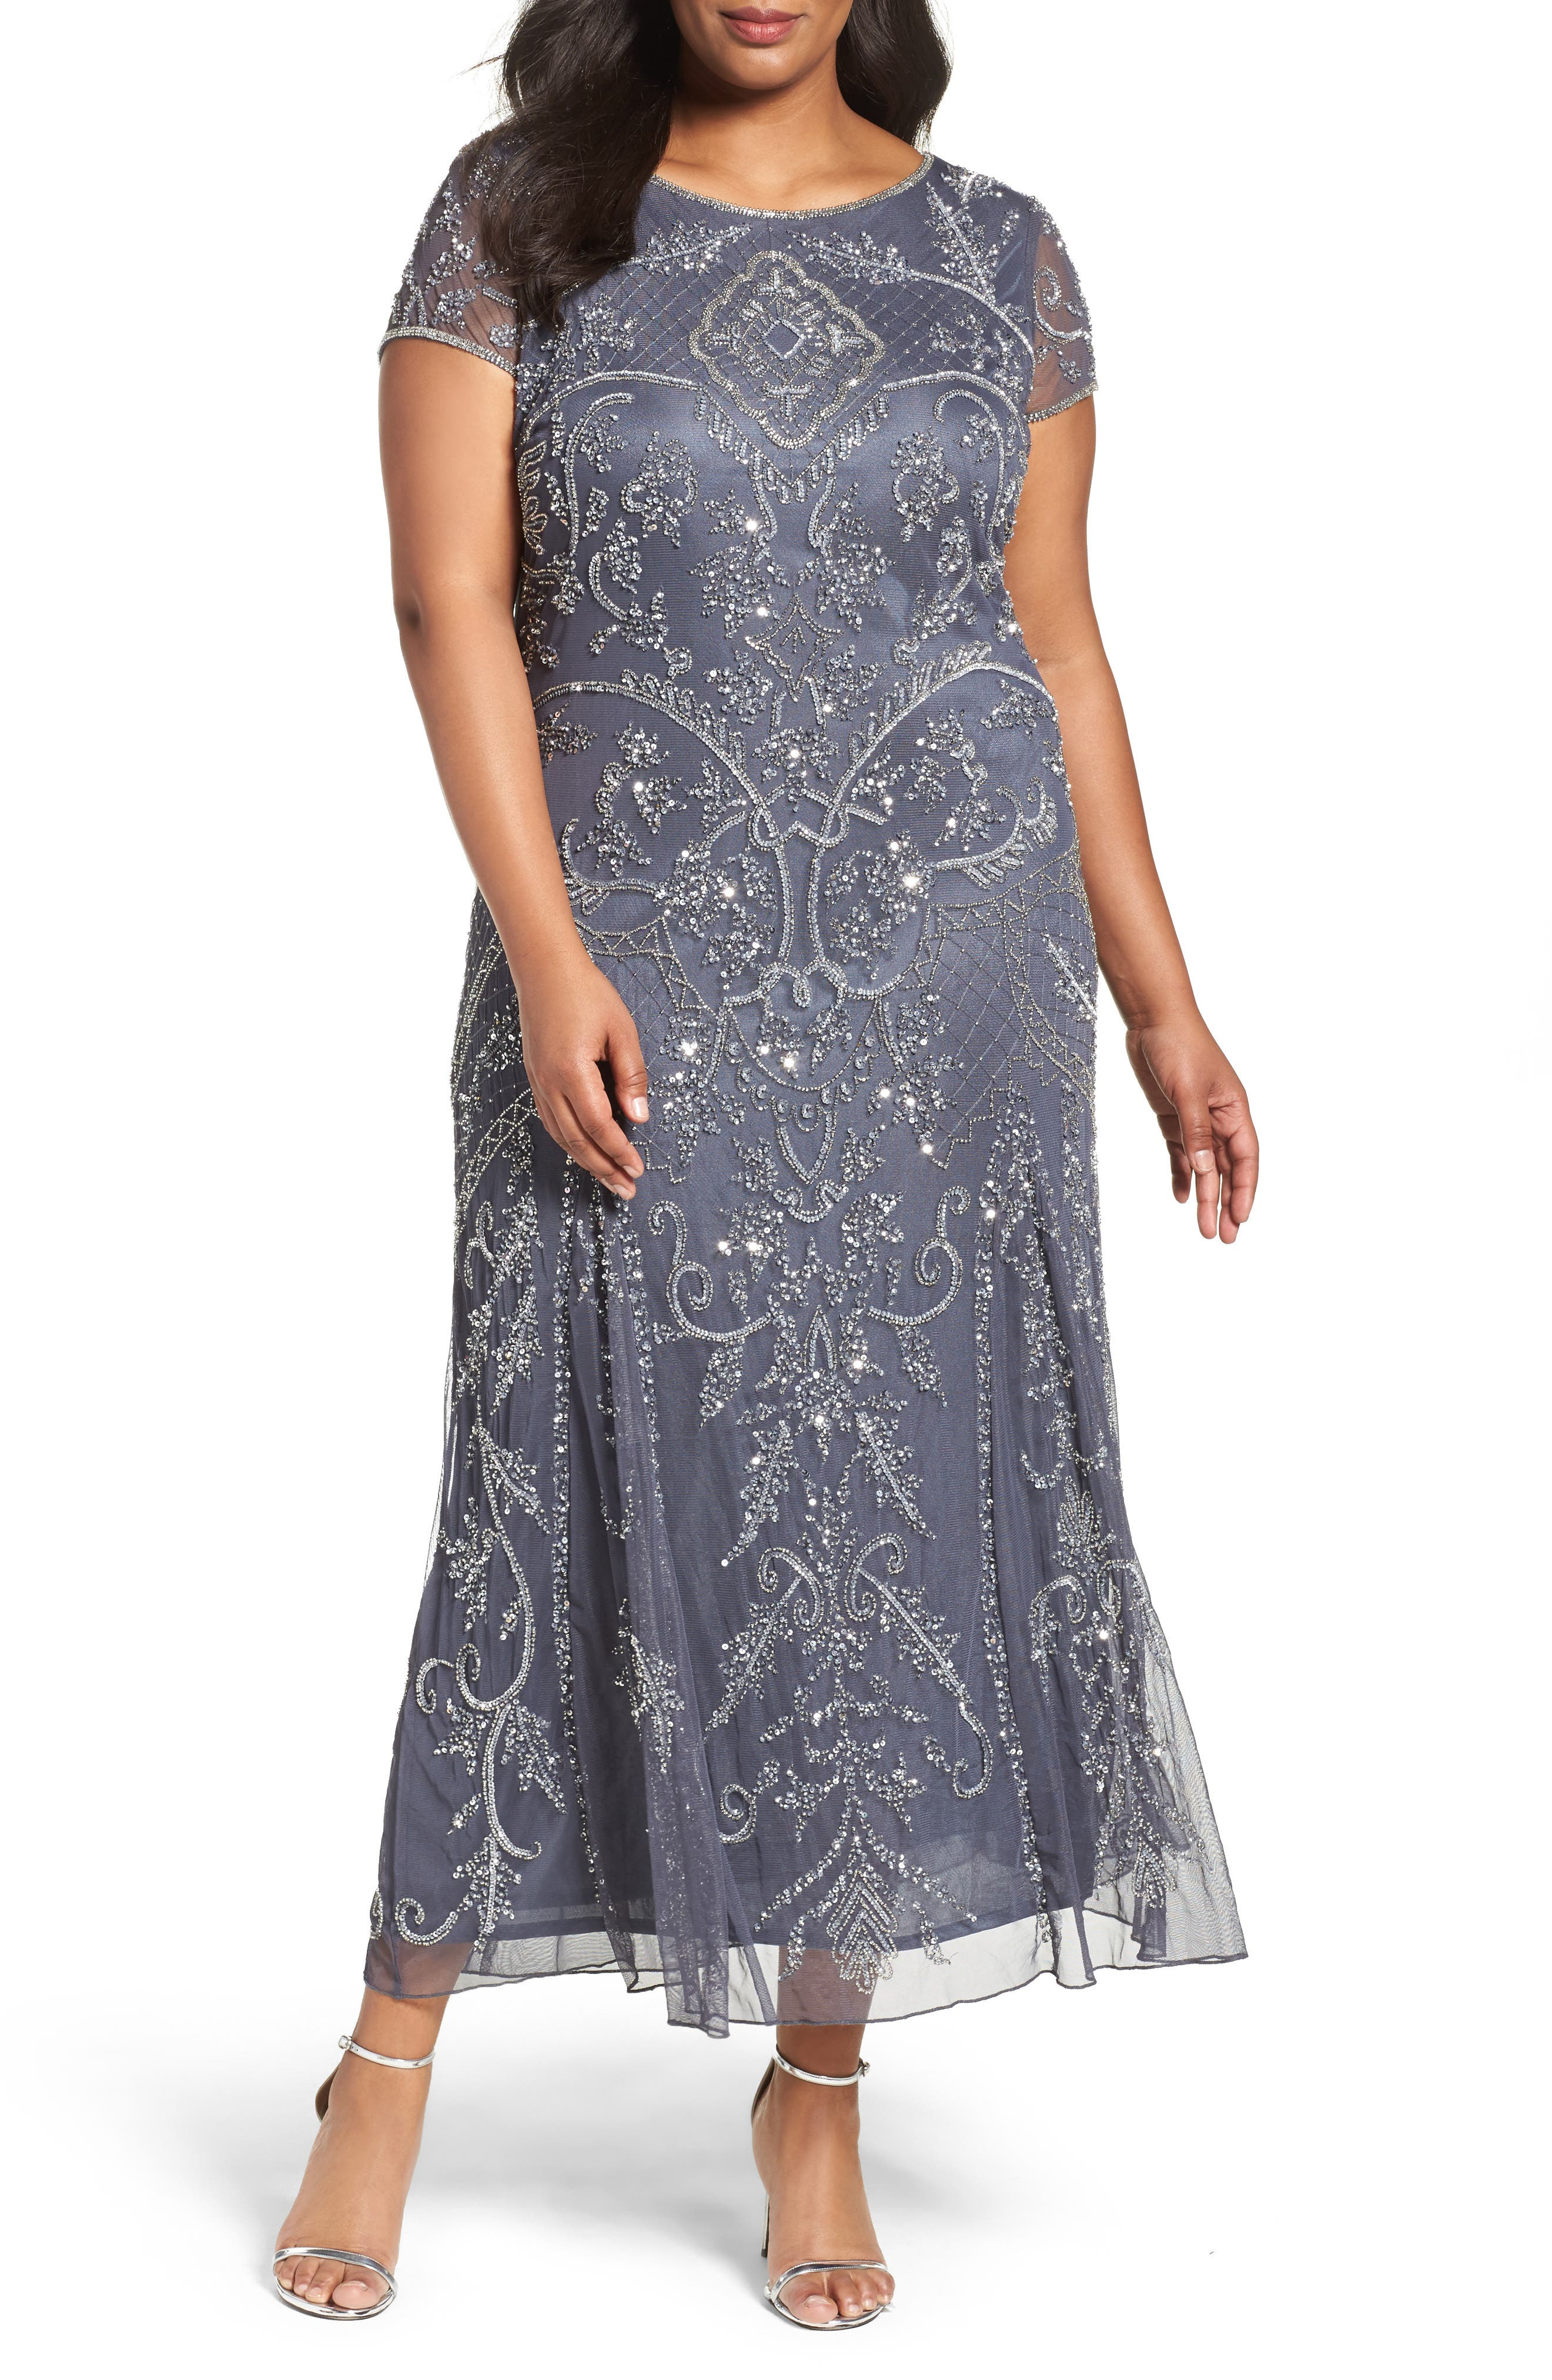 Downton Abbey Inspired Dresses Plus Size Womens Pisarro Nights Beaded Short Sleeve Column Gown Size 16W - Grey $248.00 AT vintagedancer.com